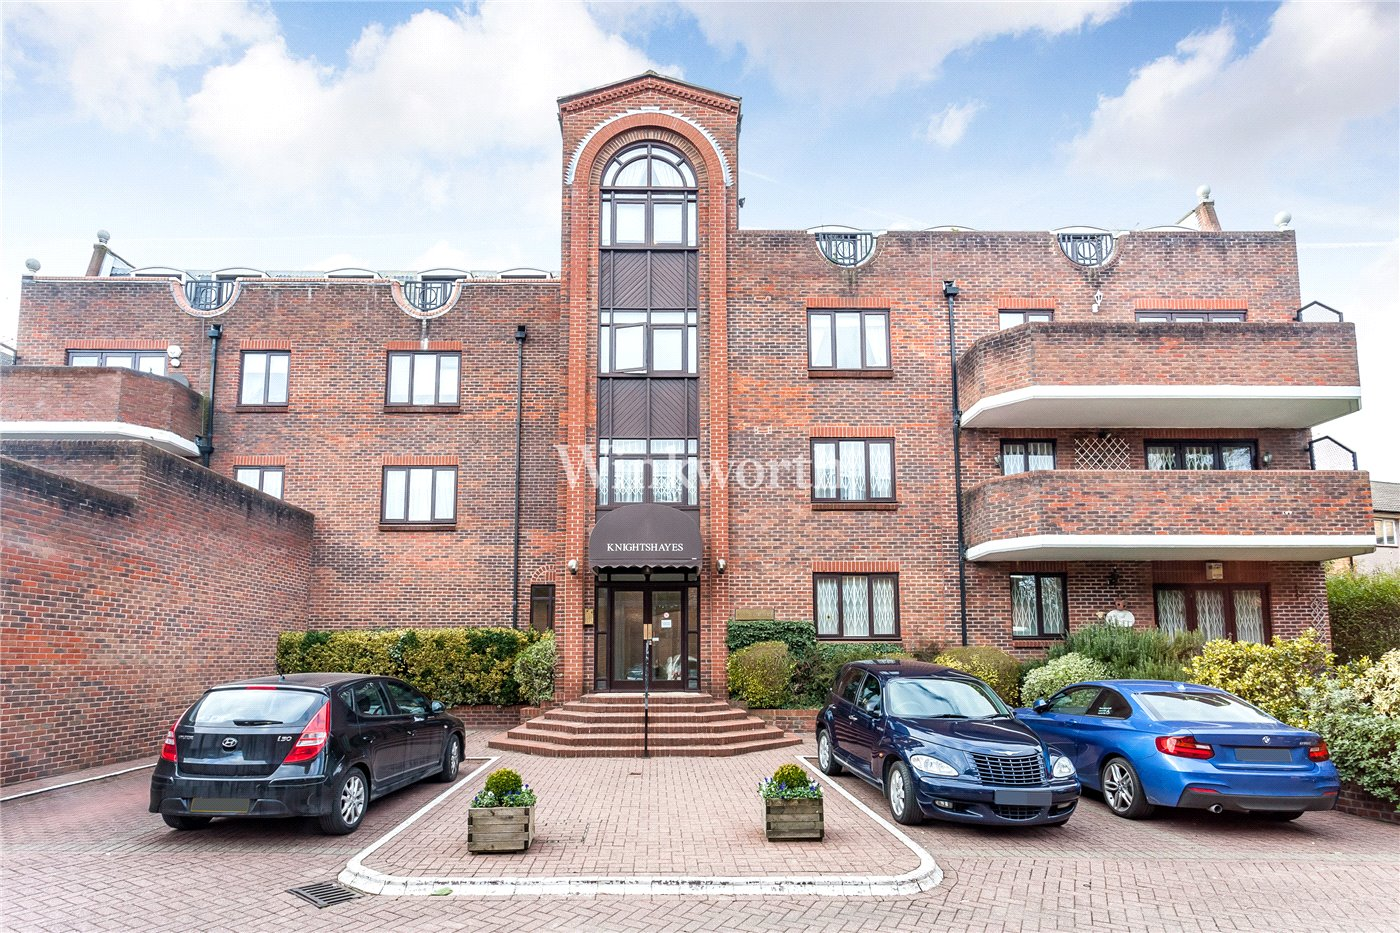 2 Bedroom Property For Sale In Knightshayes House 95